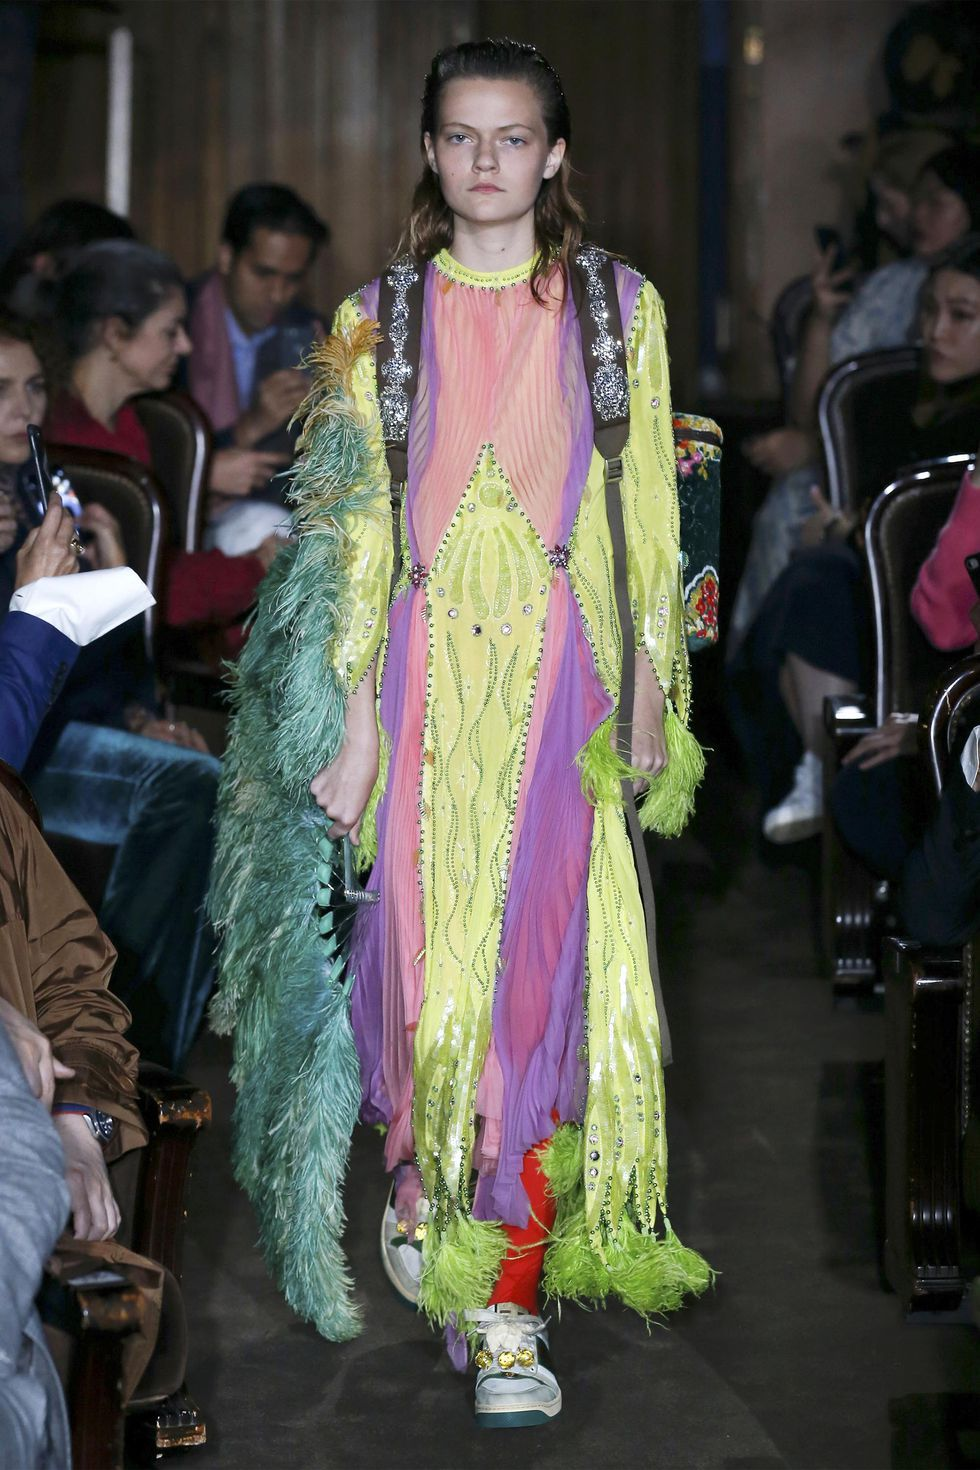 hbz-ss2019-trends-birds-of-a-feather-02-gucci-po-rs19-0024-1539195460.jpg